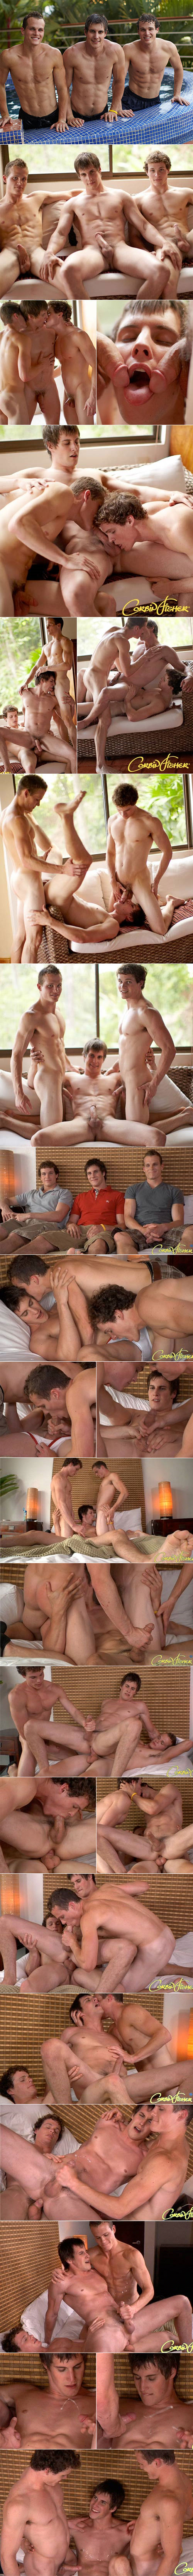 CorbinFisher: The twins Luca and Liam tag Travis